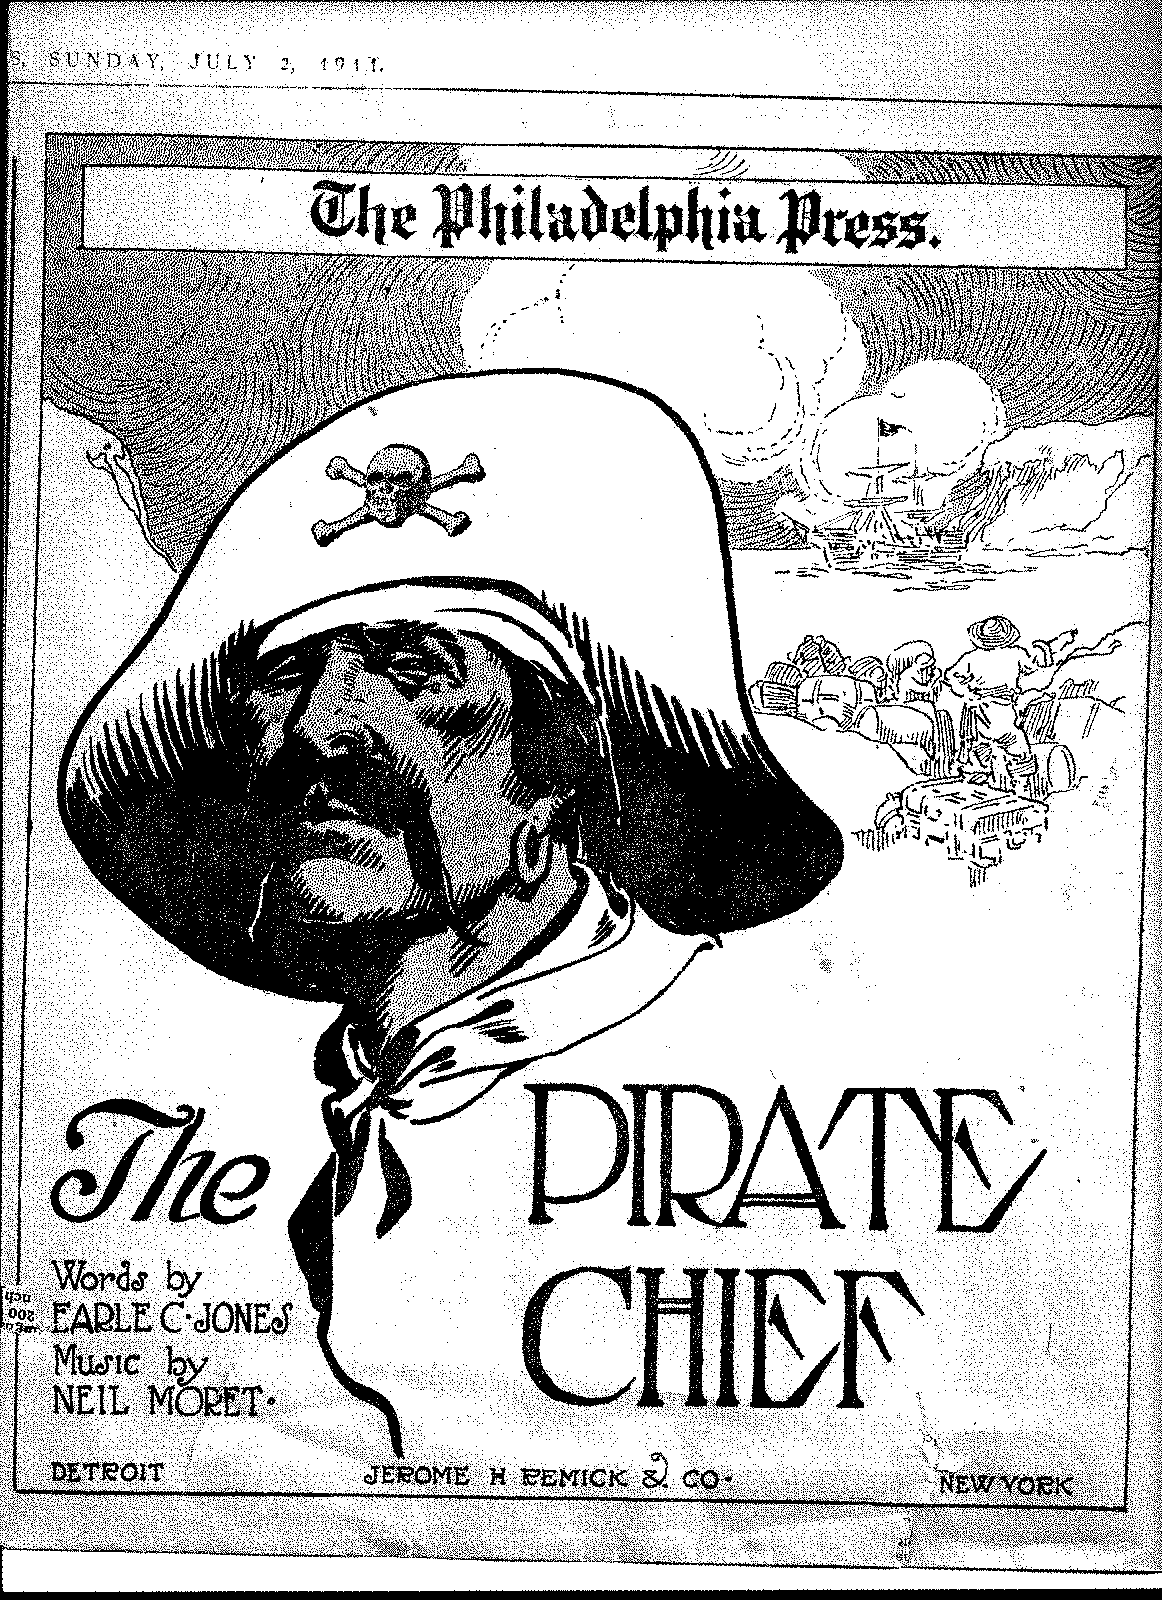 PMLP228801-The Pirate Chief Music.pdf